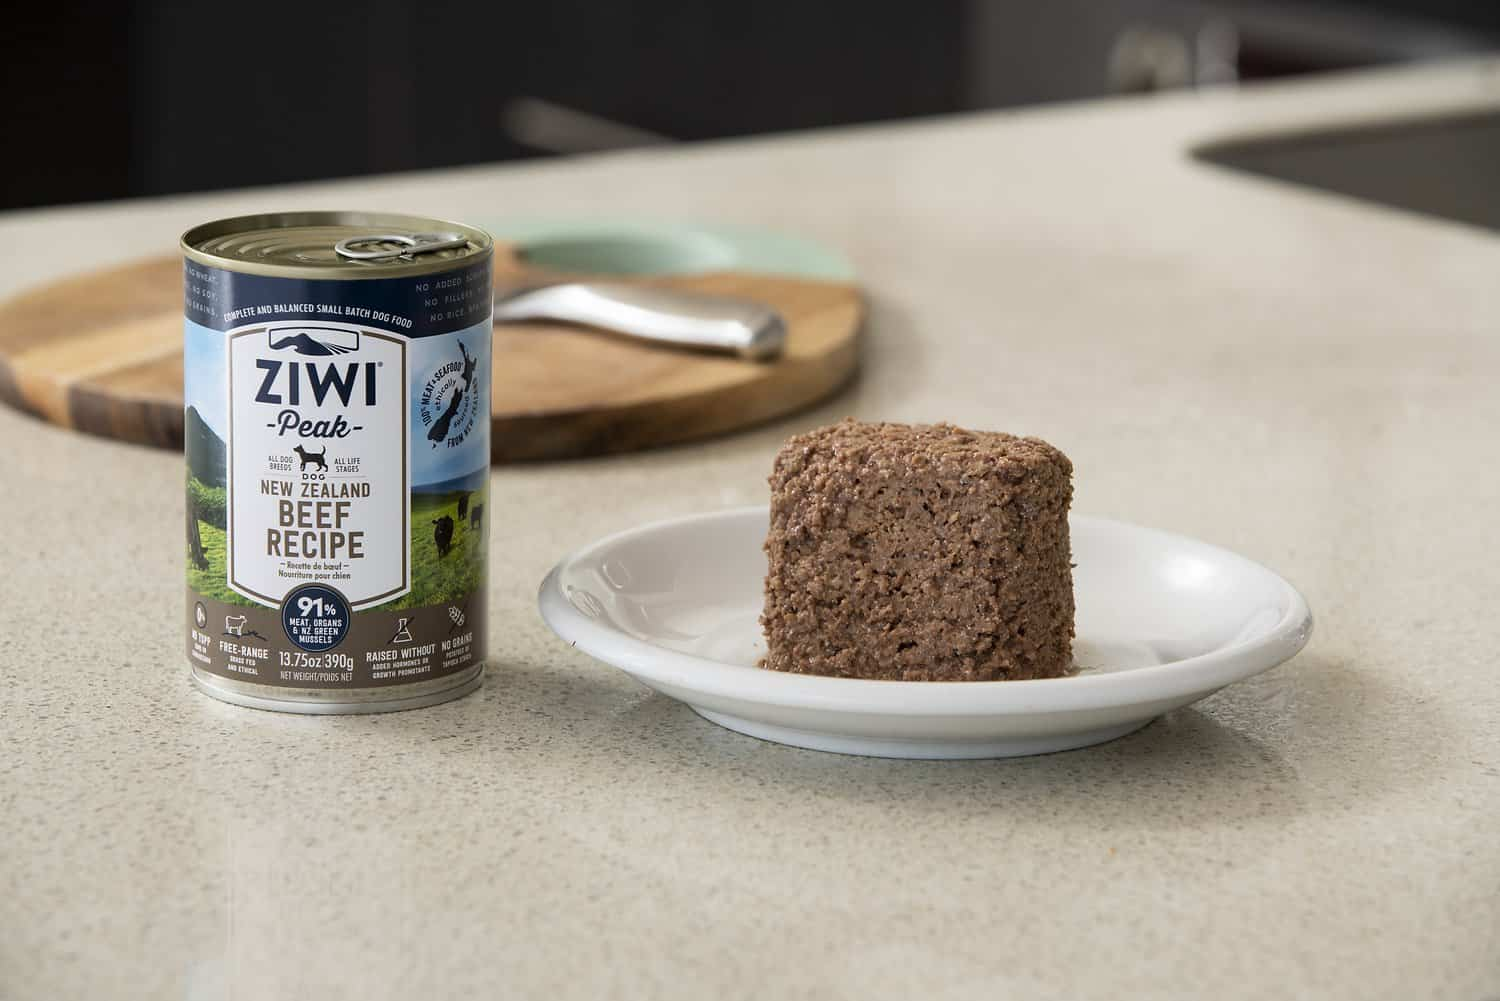 ZiwiPeak Dog Food Review 2020: Taste of Life in New Zealand 25